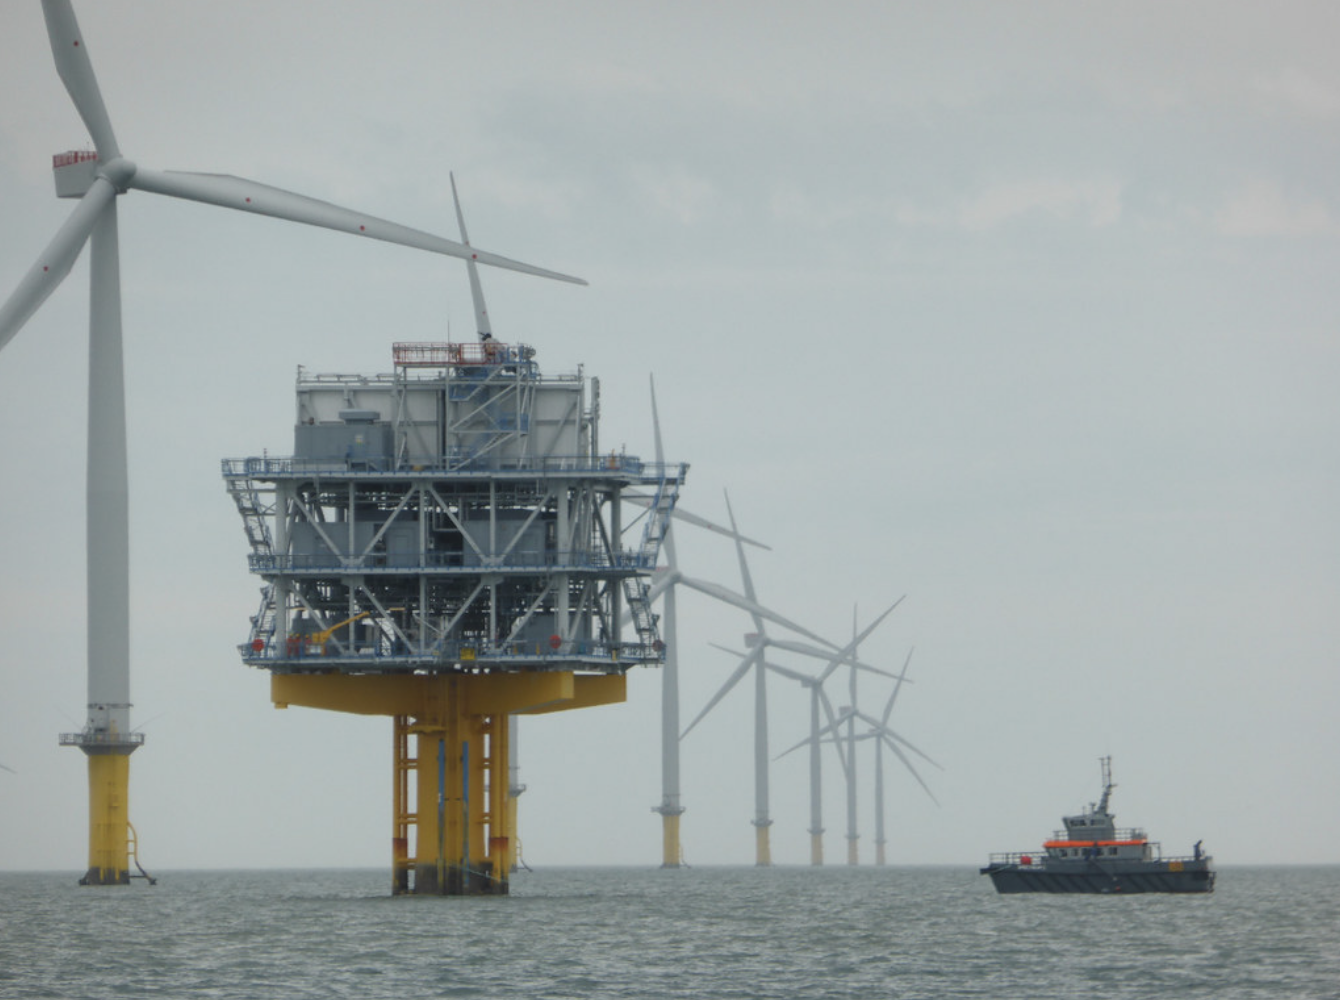 A gray day at the London Array, one of the world's largest offshore windfarms. The largest offshore wind farms are currently in northern Europe, especially in the United Kingdom and Germany, which together account for over two-thirds of the total offshore wind power installed worldwide. June 12, 2016 (Photo by pshab) Creative Commons license via Flickr